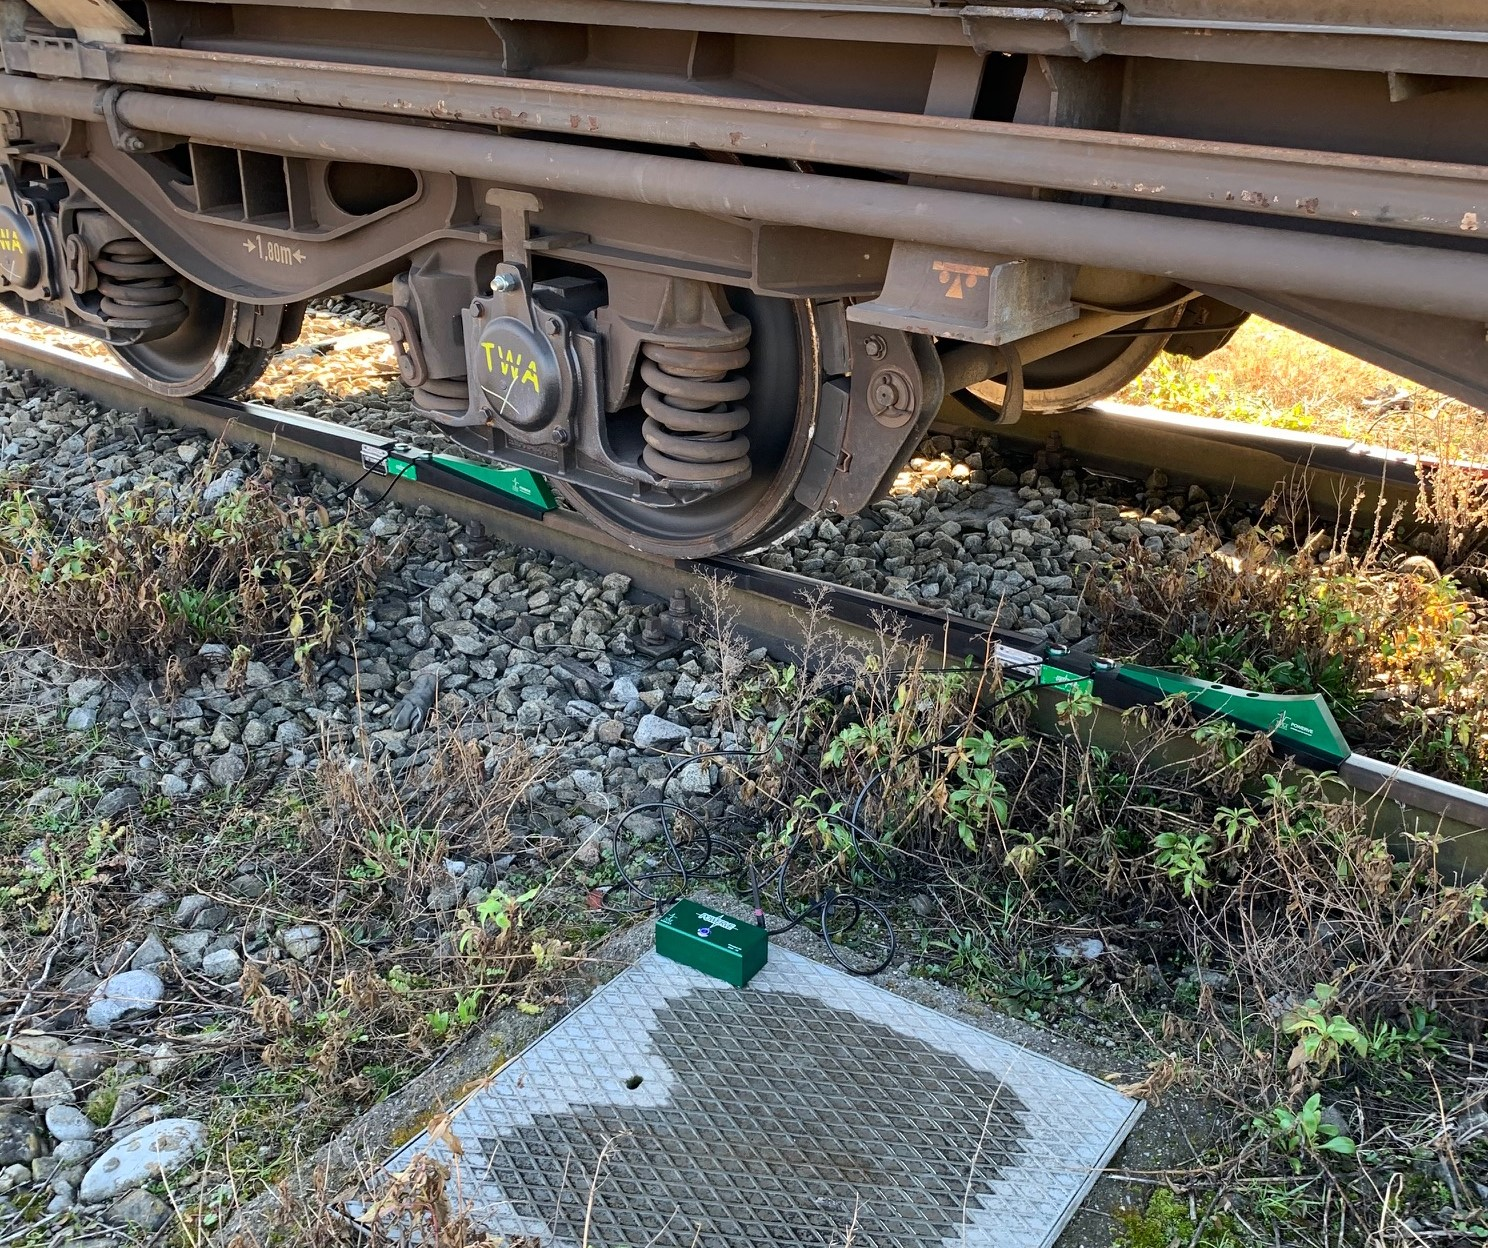 Static train weighing system - green side